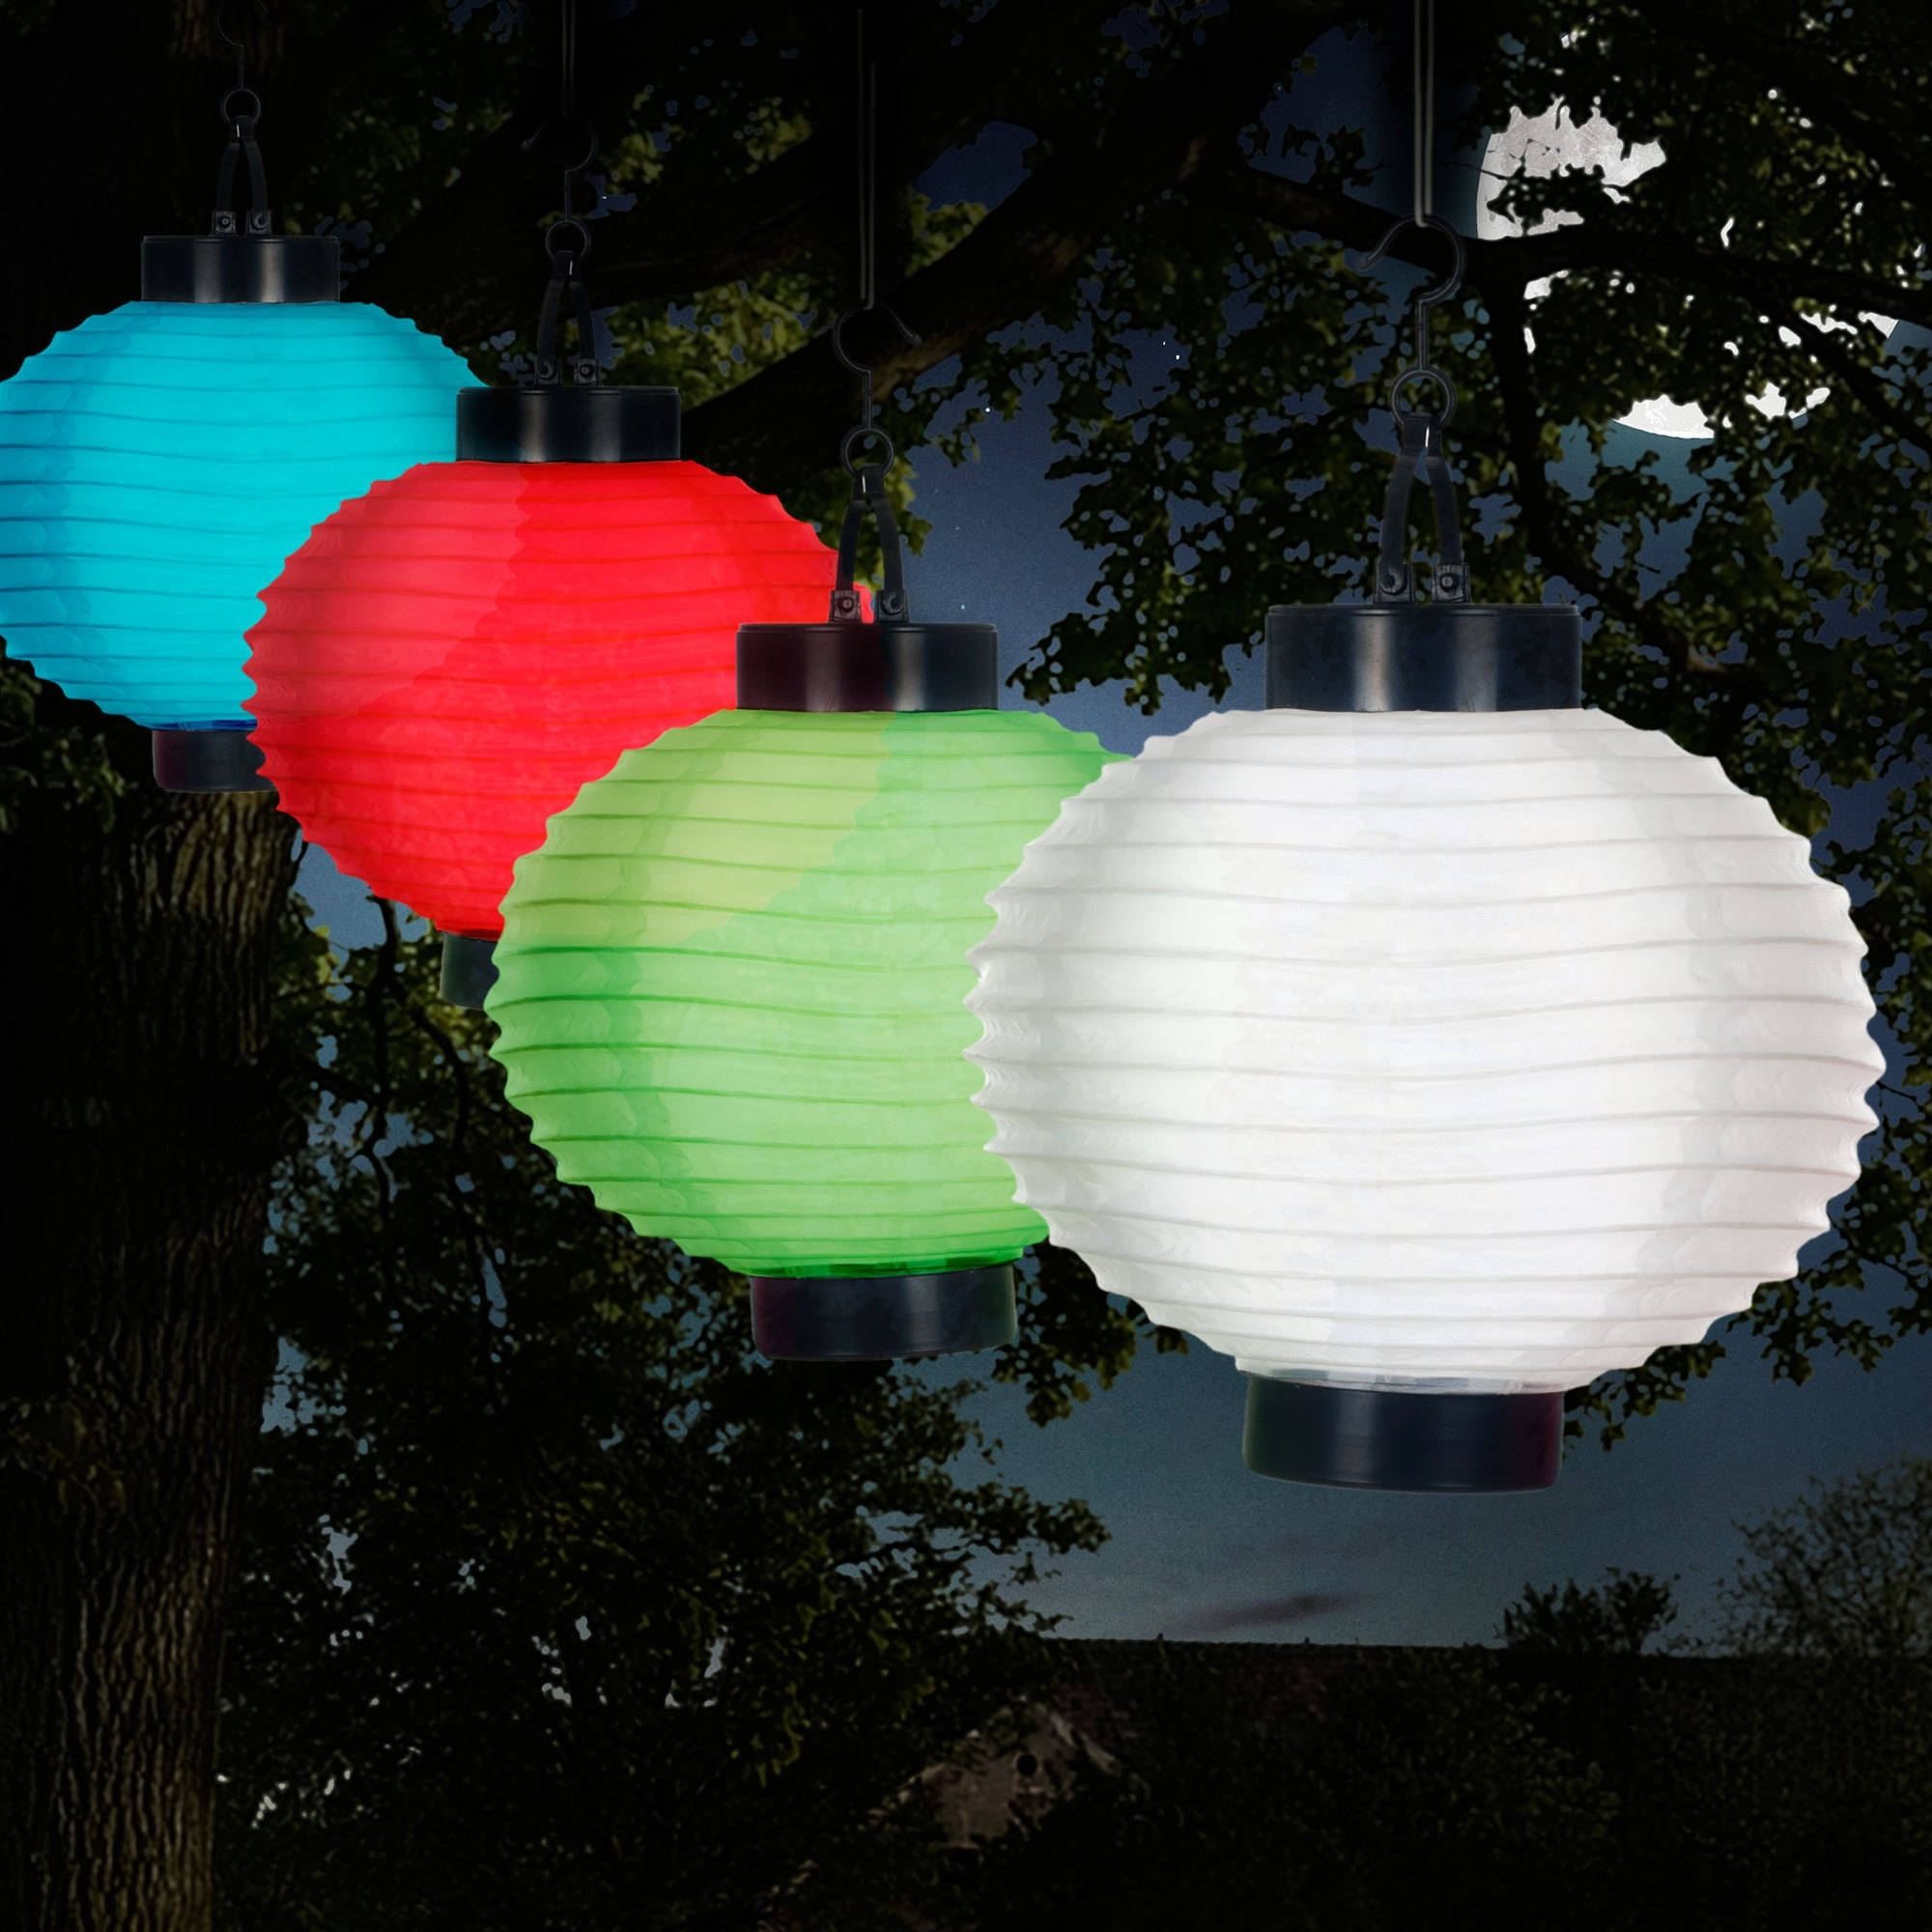 Outdoor Hanging Chinese Lanterns Regarding Most Current Pure Garden Outdoor Solar Chinese Lanterns, Led, Set Of 4 – Walmart (Gallery 5 of 20)